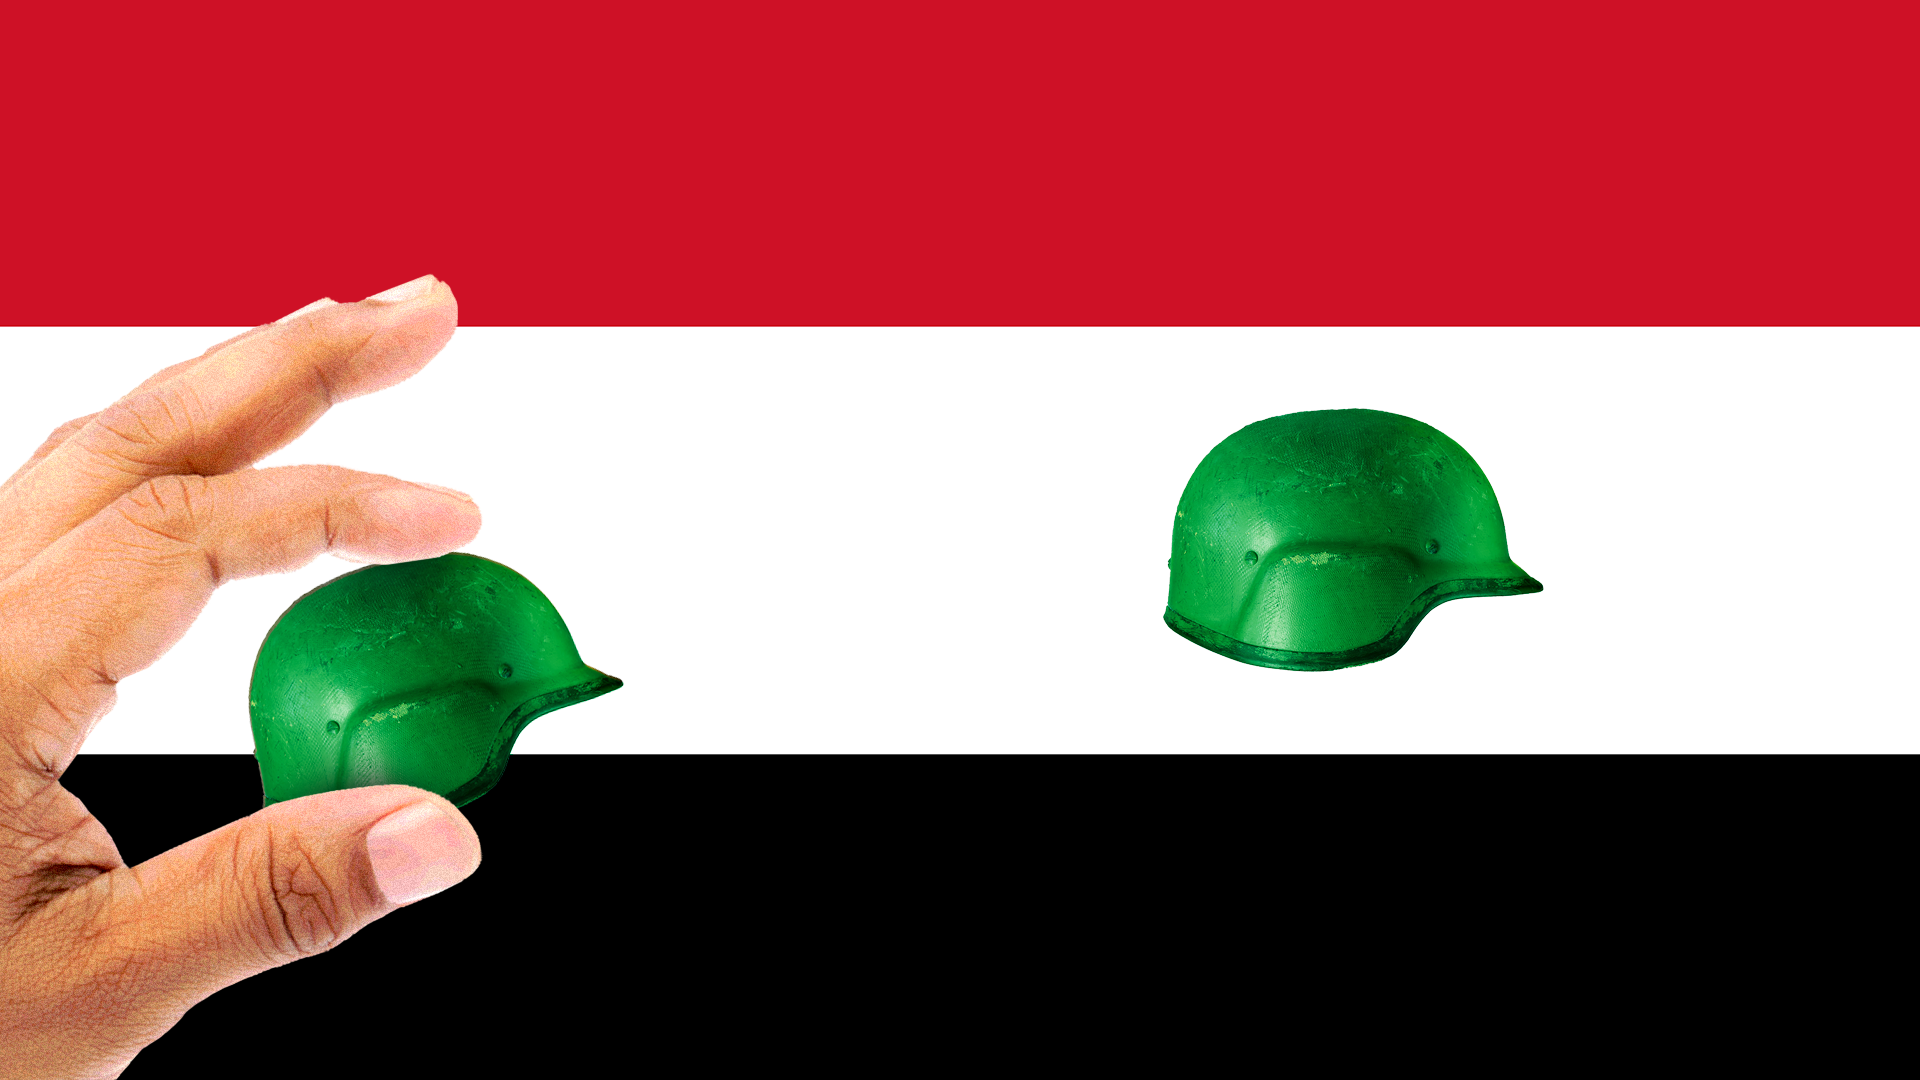 a hand removing a green army helmet from the middle of the Syrian flag